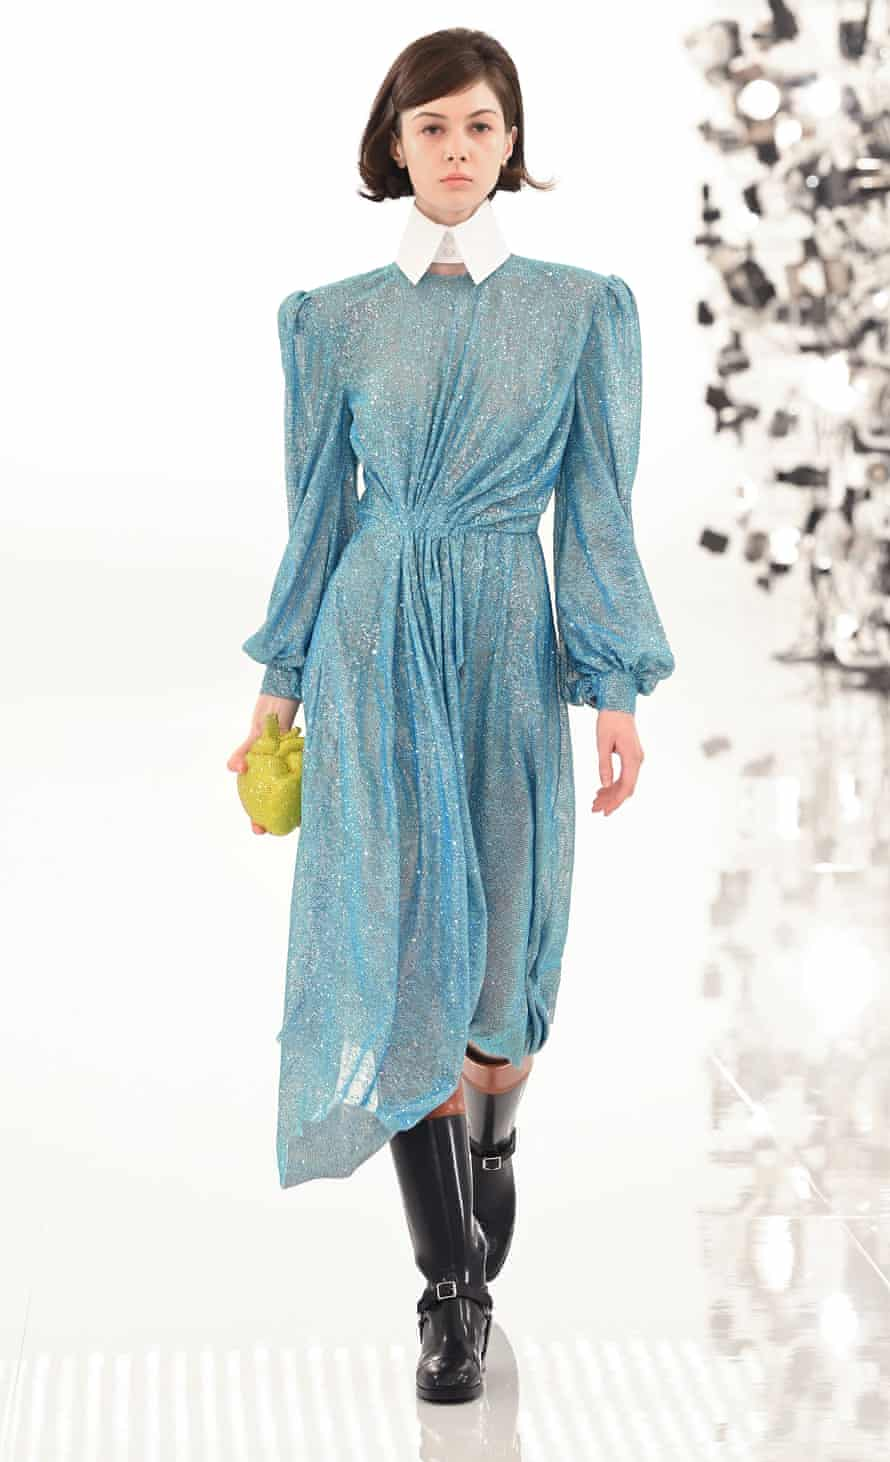 model wears long blue dress with black riding boots